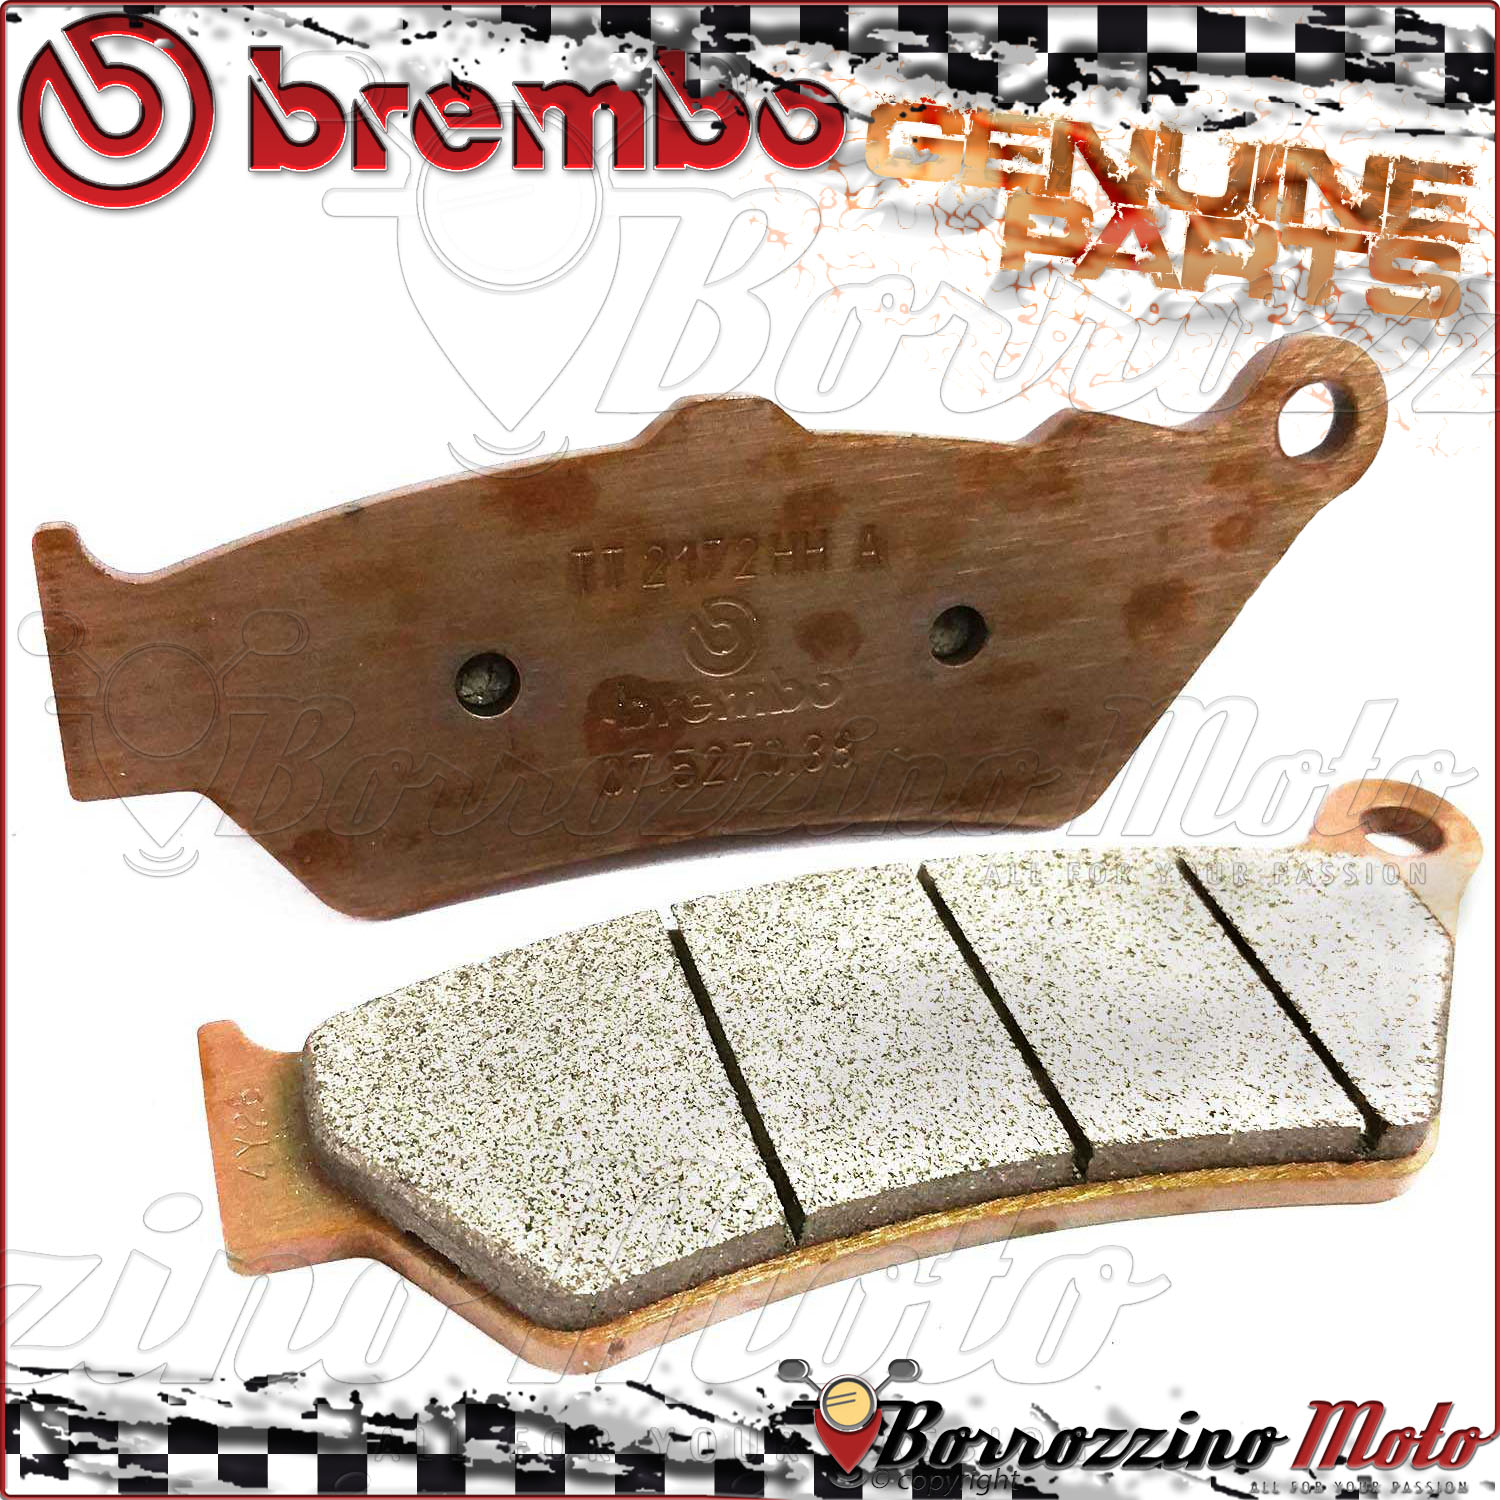 Details about REAR BRAKE PADS BREMBO SINTERED 07BB0390 BMW R 1200 GS  ADVENTURE 2014 2015